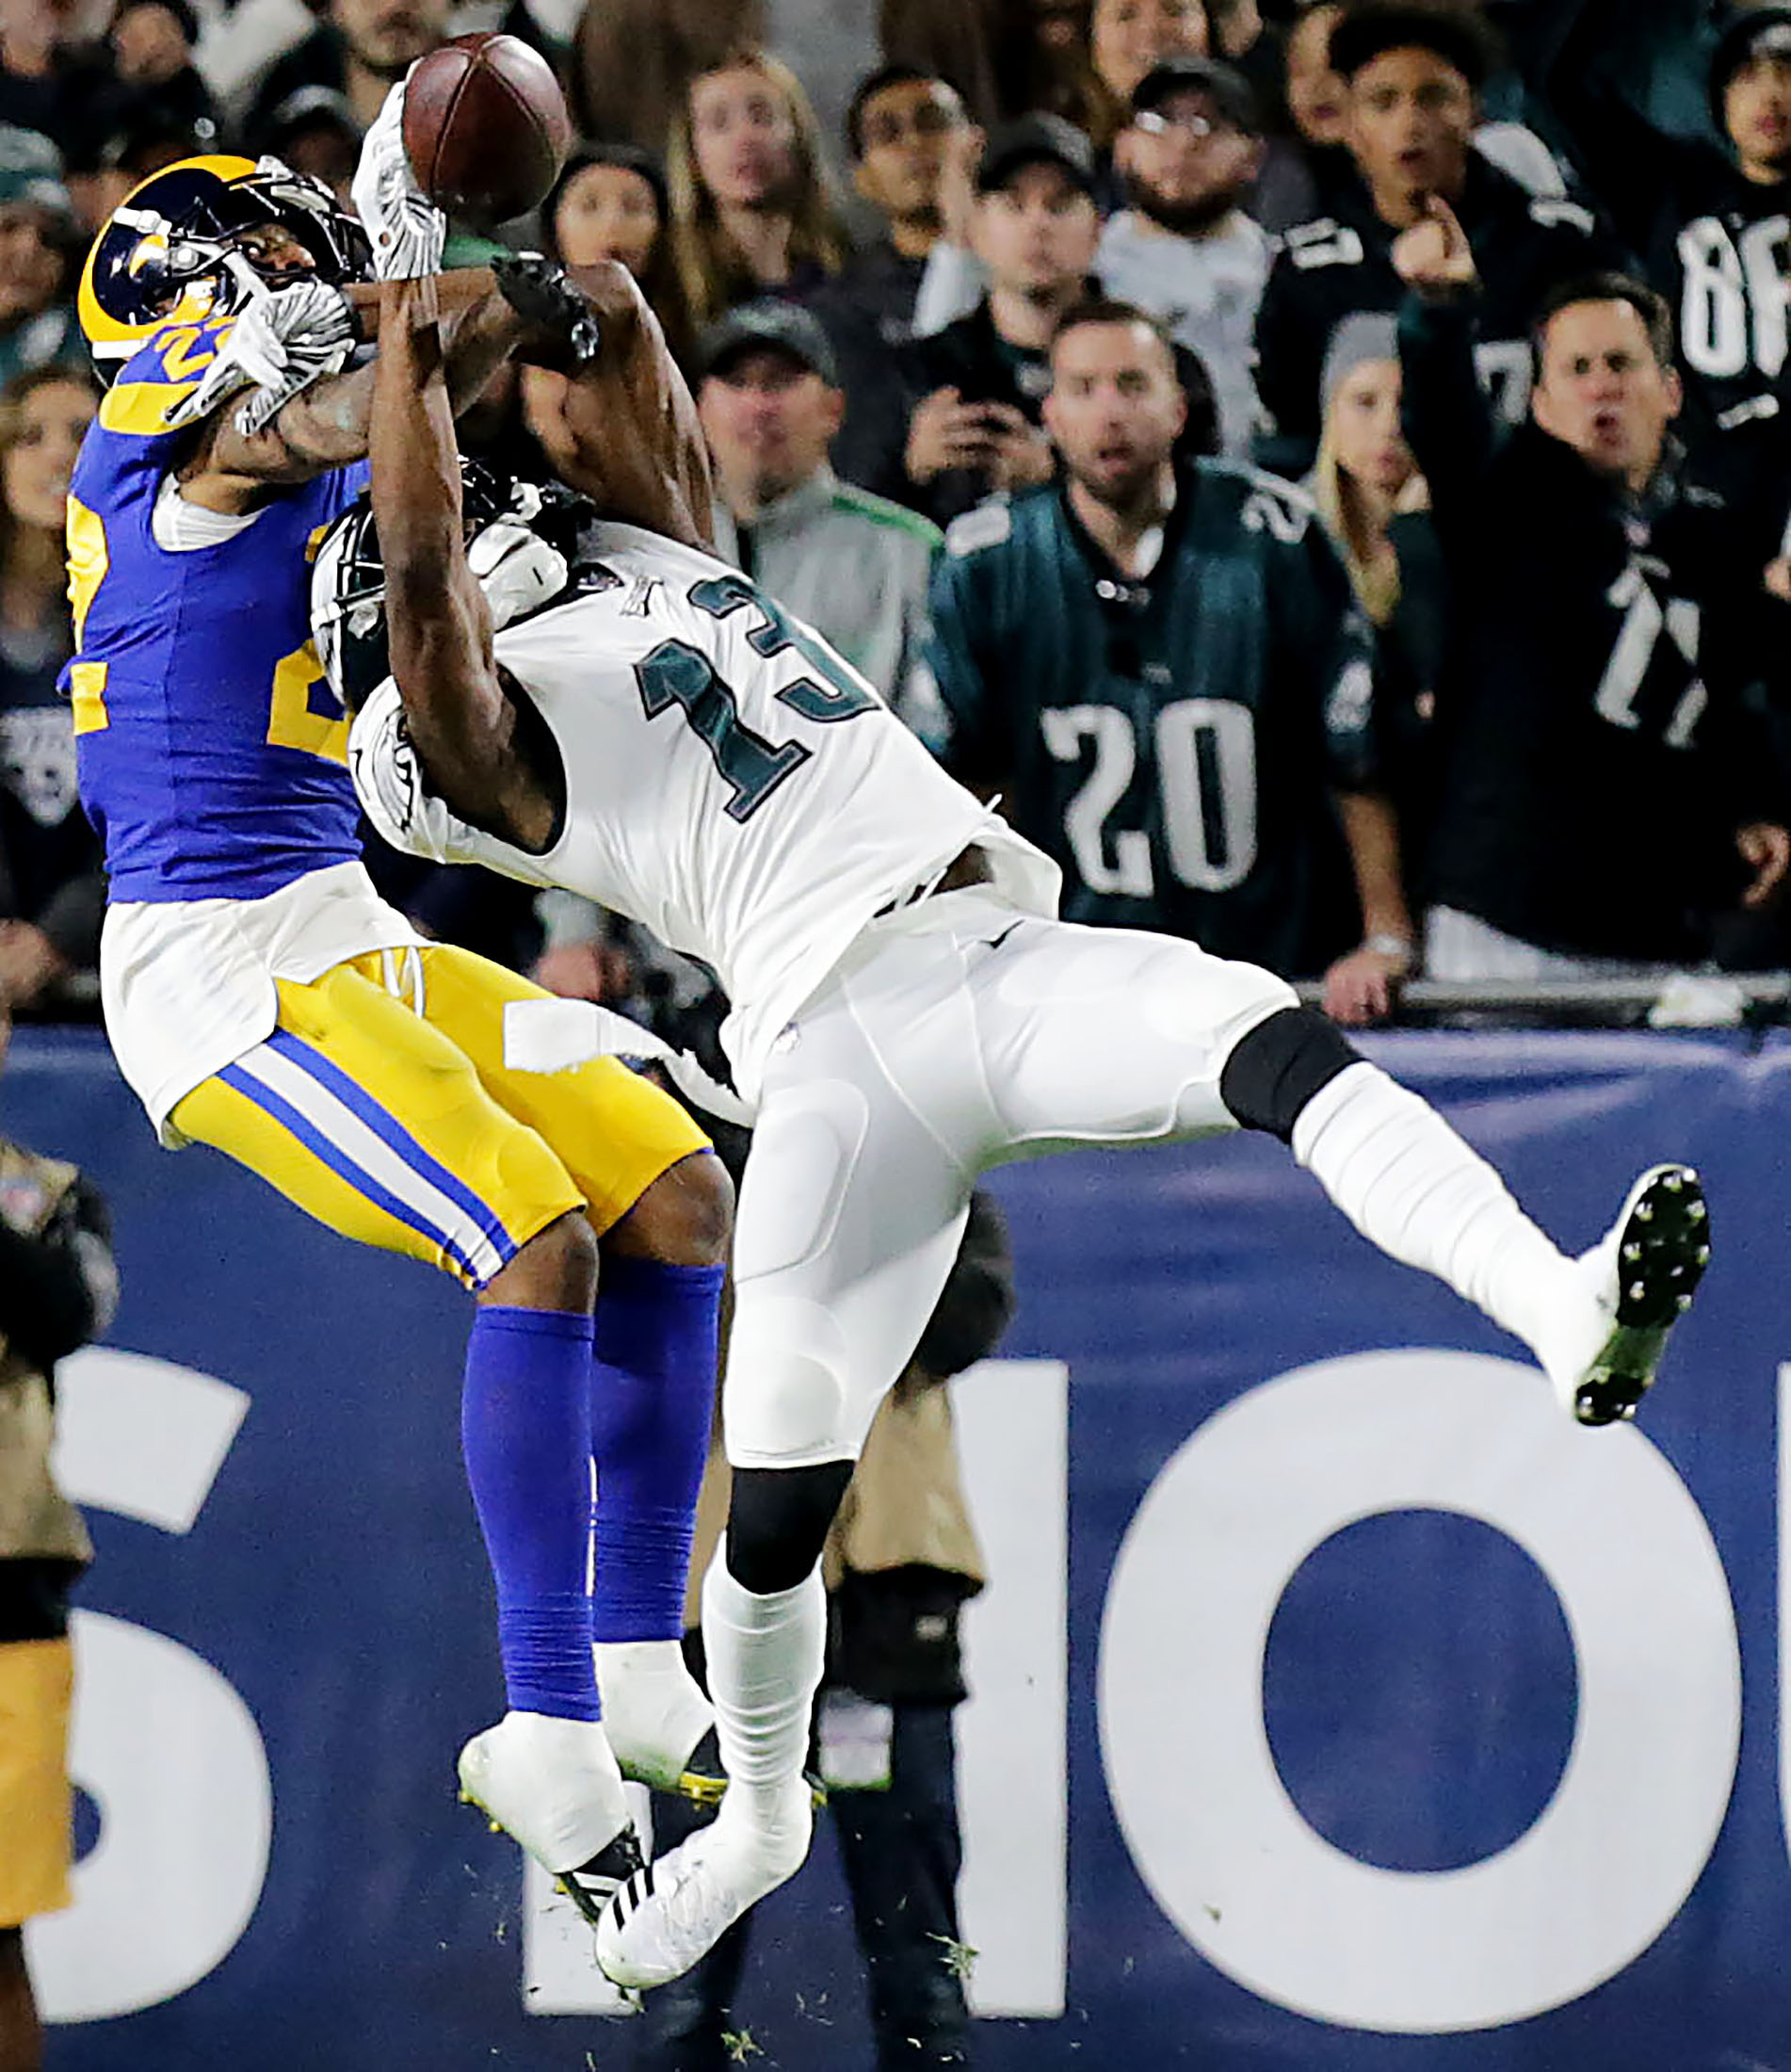 Los Angeles Rams cornerback Marcus Peters #22 breaks up a pass intended for Philadelphia Eagles wide receiver Nelson Agholor #13 in the first half of the game at the Los Angeles Memorial Coliseum in Los Angeles on Sunday, December 16, 2018.